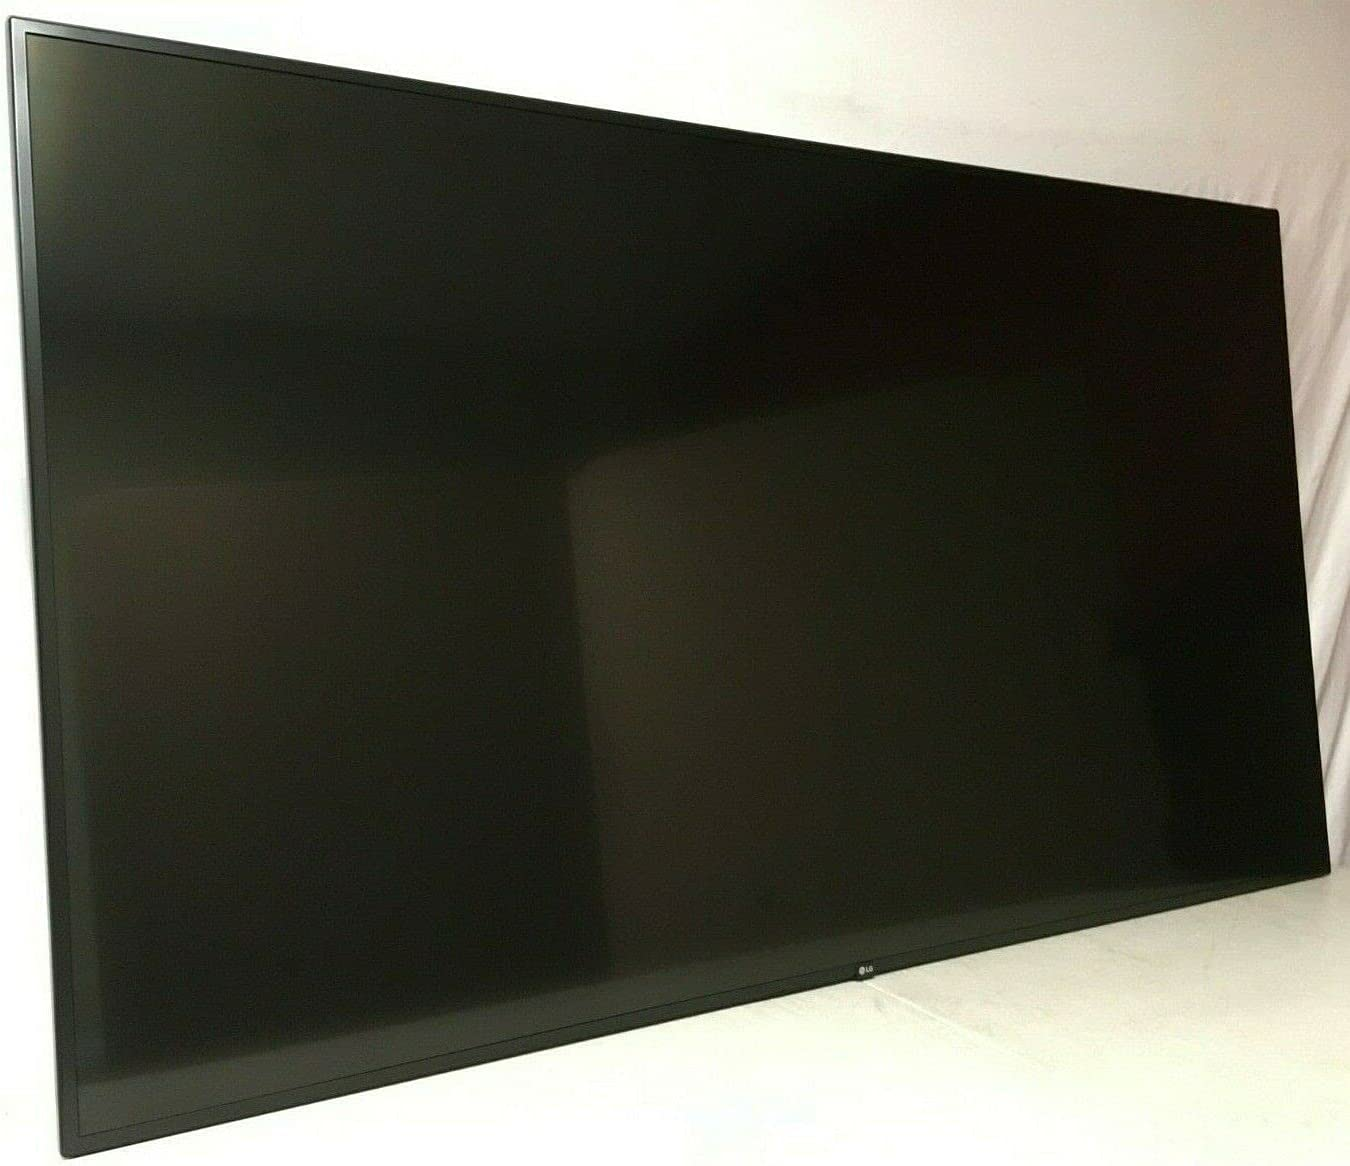 LG COMMERCIAL LFD 75IN LCD Minneapolis Mall MNTR Max 74% OFF TAA 3840X2160 UHD